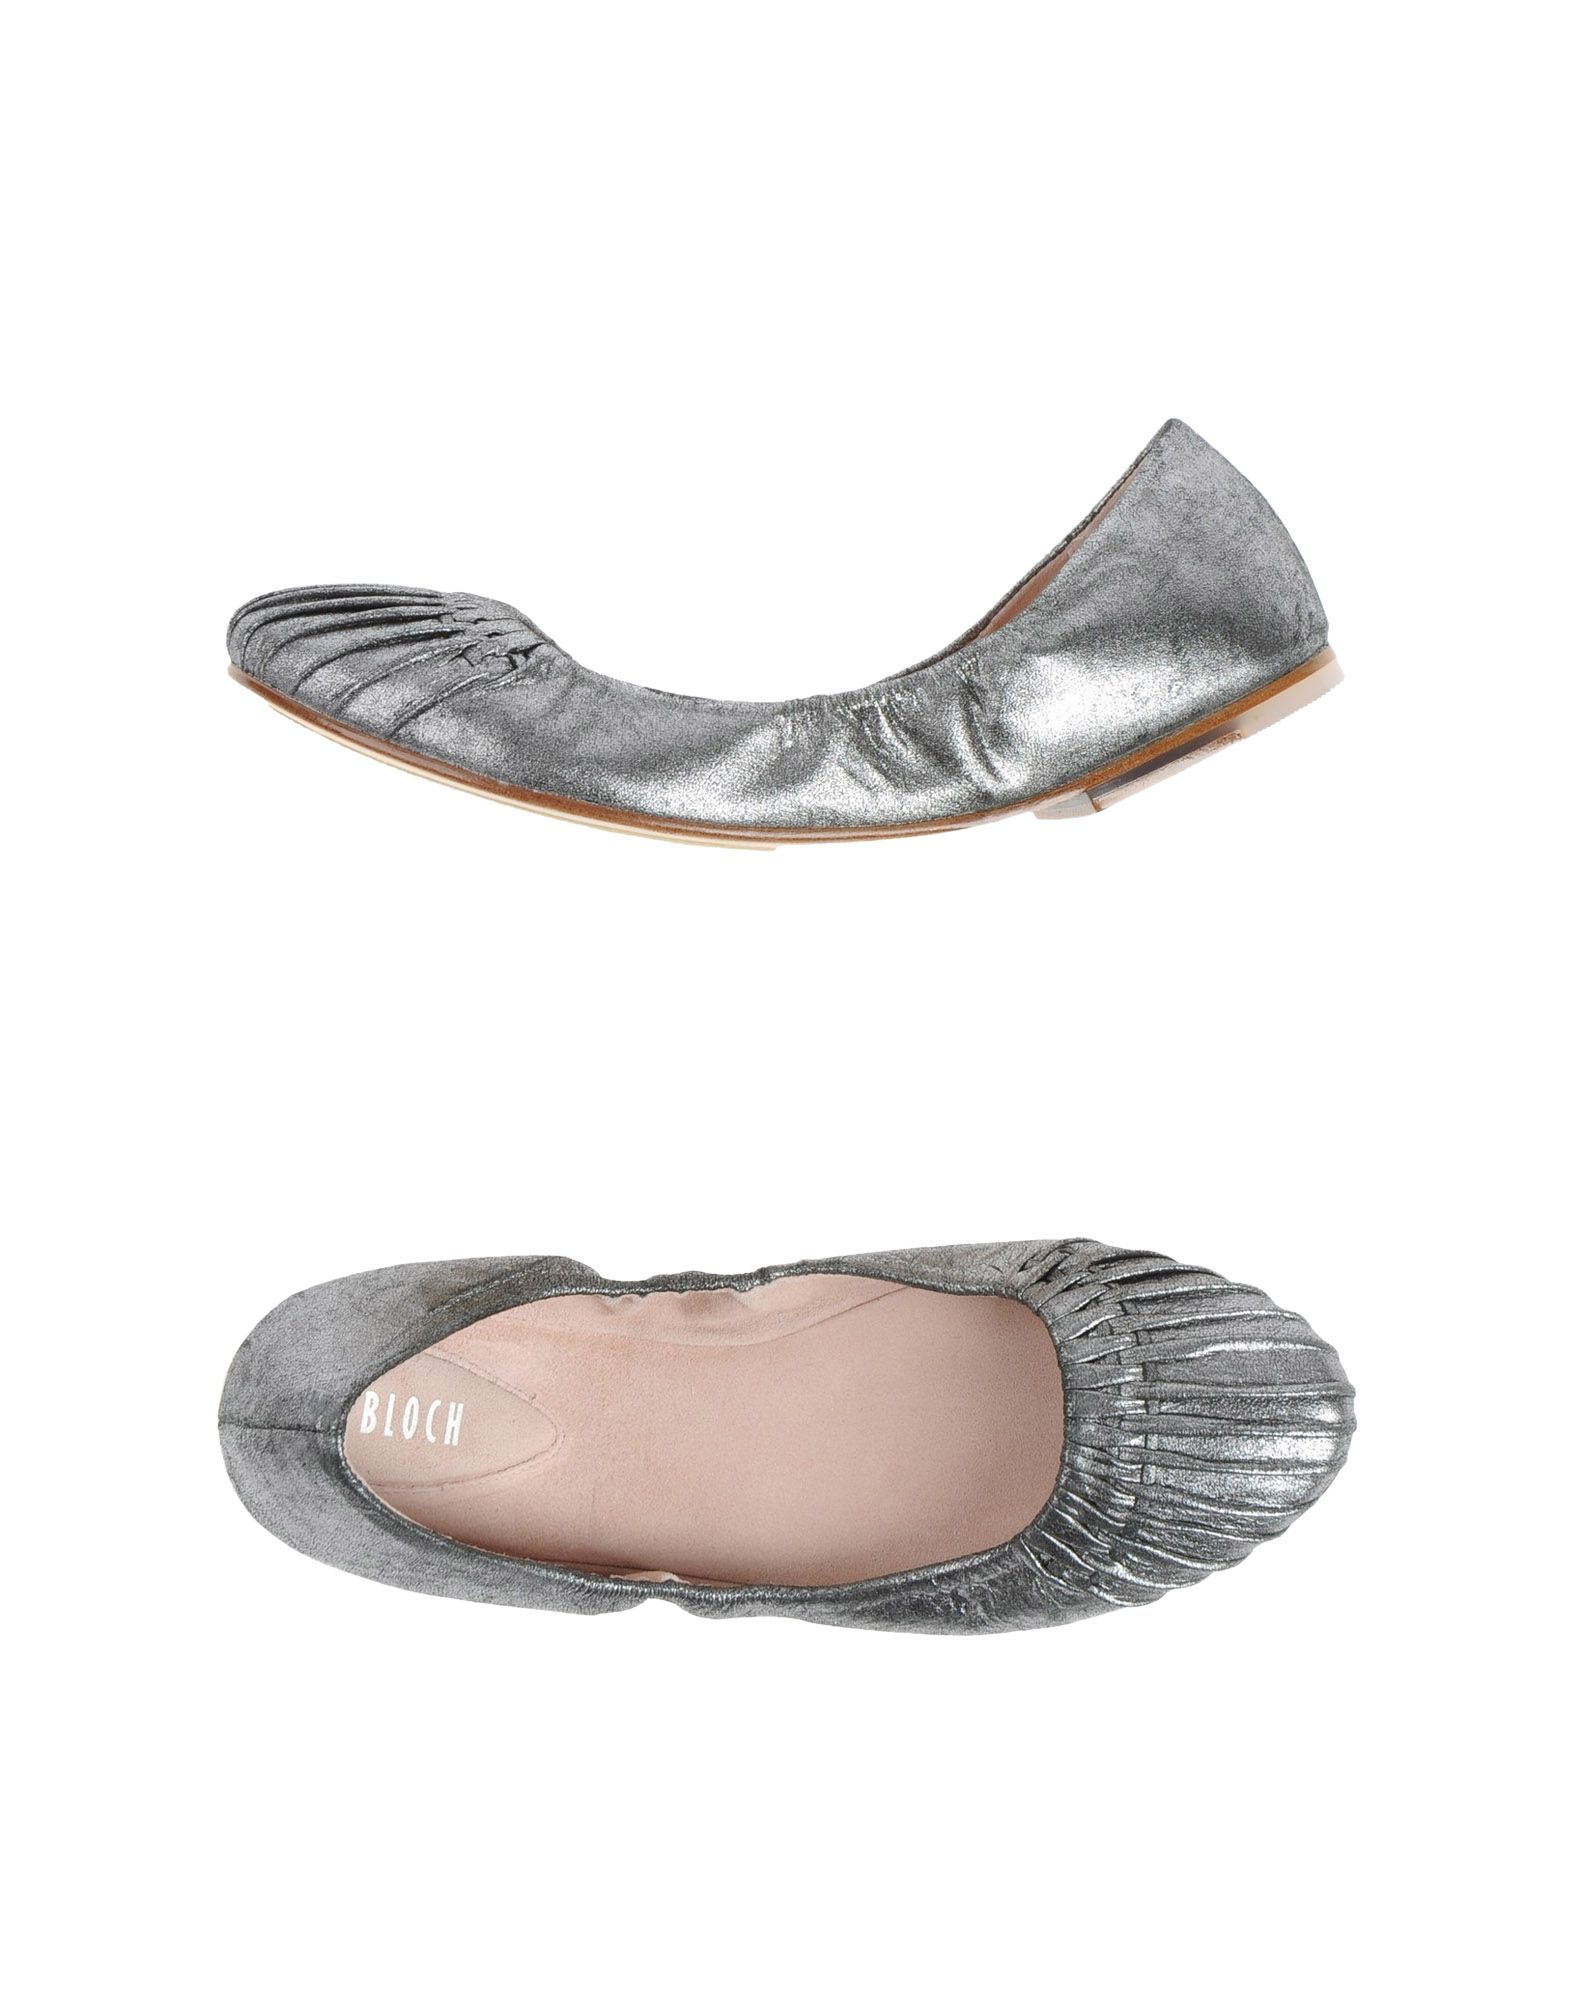 downiloadojg.gq: silver ballet flats. s solid plain elastic collar comfort soft slip on ballet flats shoes Meeshine Womens Foldable Soft Pointed Toe Ballet Flats Rhinestone Comfort Slip on Flat Shoes. by Meeshine. $ - $ $ 15 $ 22 99 Prime. FREE Shipping on eligible orders.